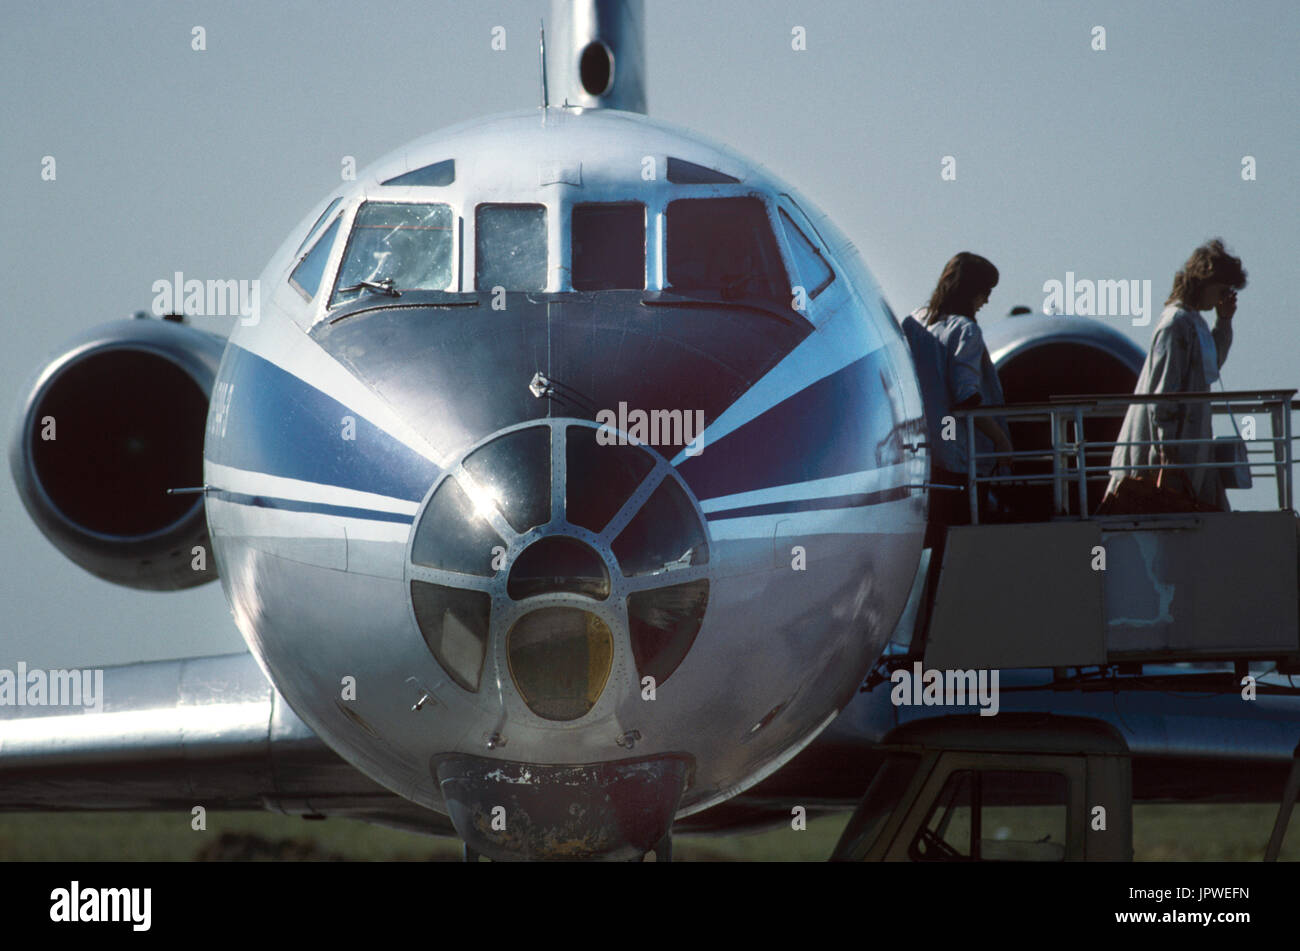 Airstairs Stock Photos Amp Airstairs Stock Images Alamy